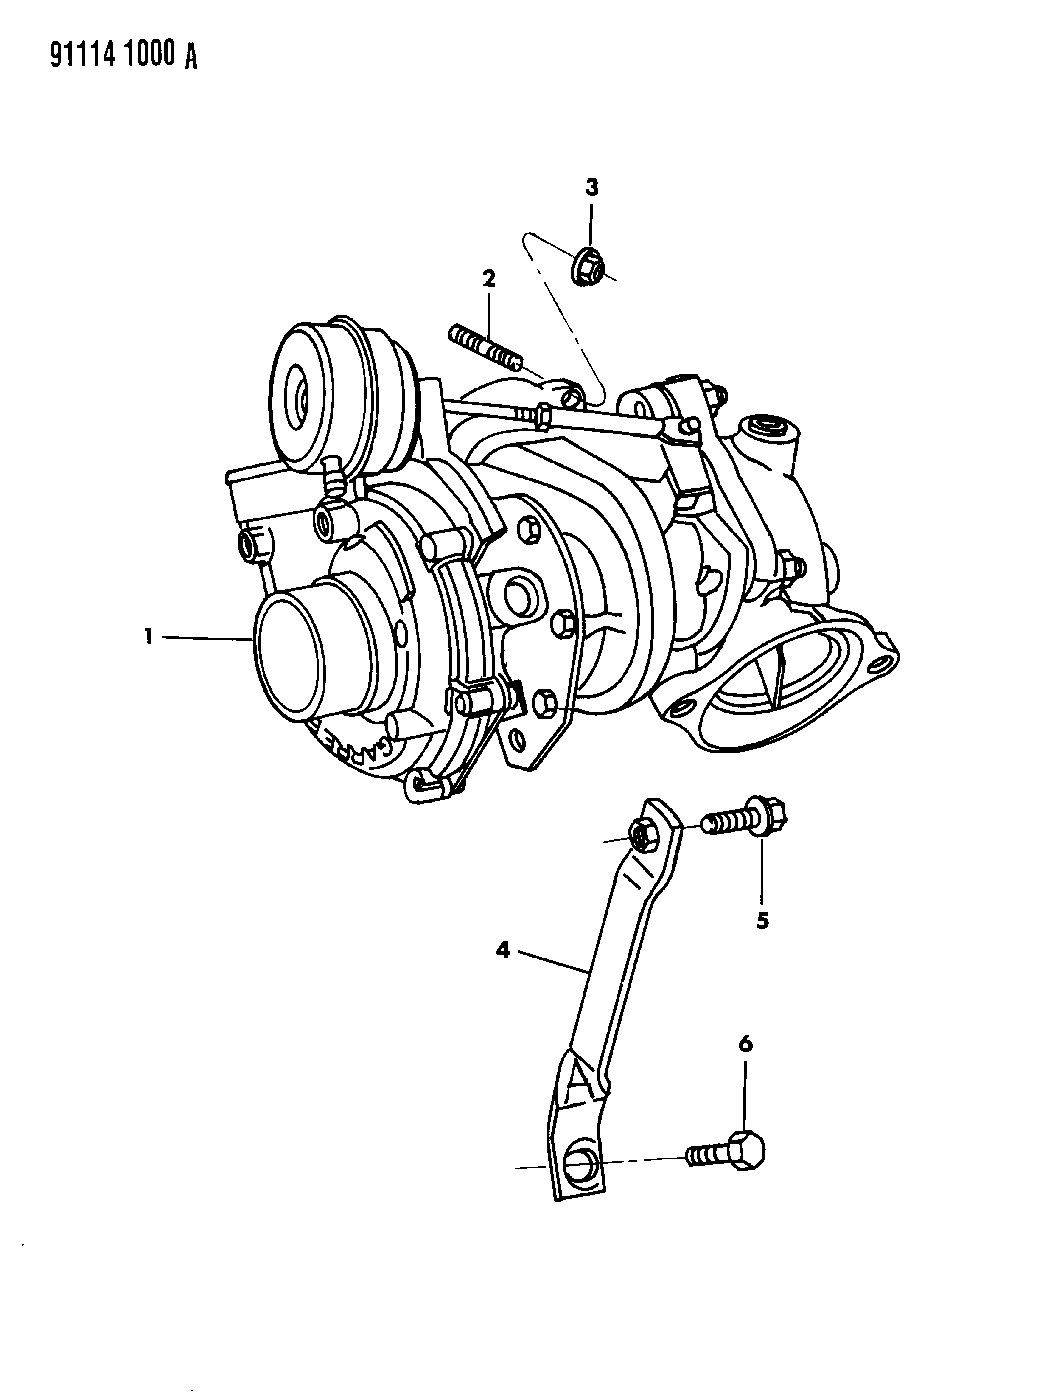 1991 dodge shadow turbo charger